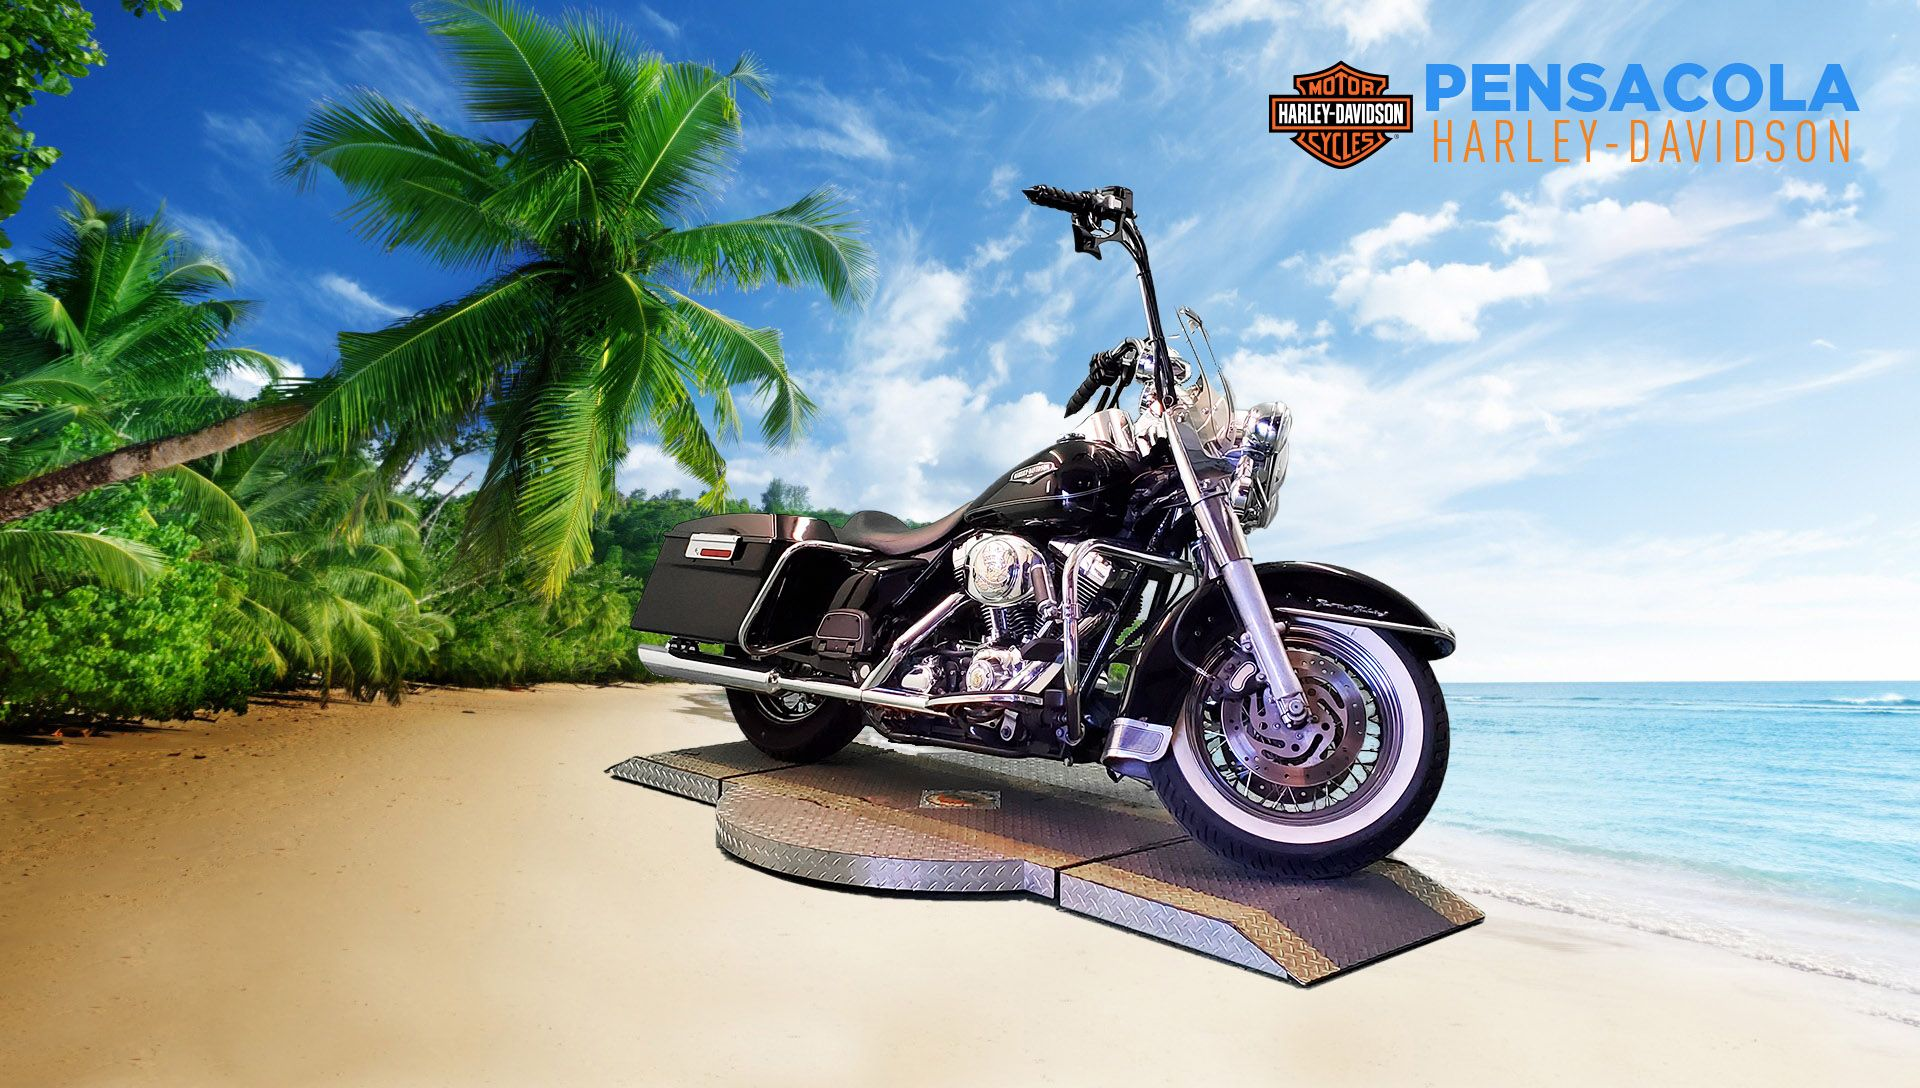 Pre-Owned 2006 Harley-Davidson Road King Classic FLHRCI